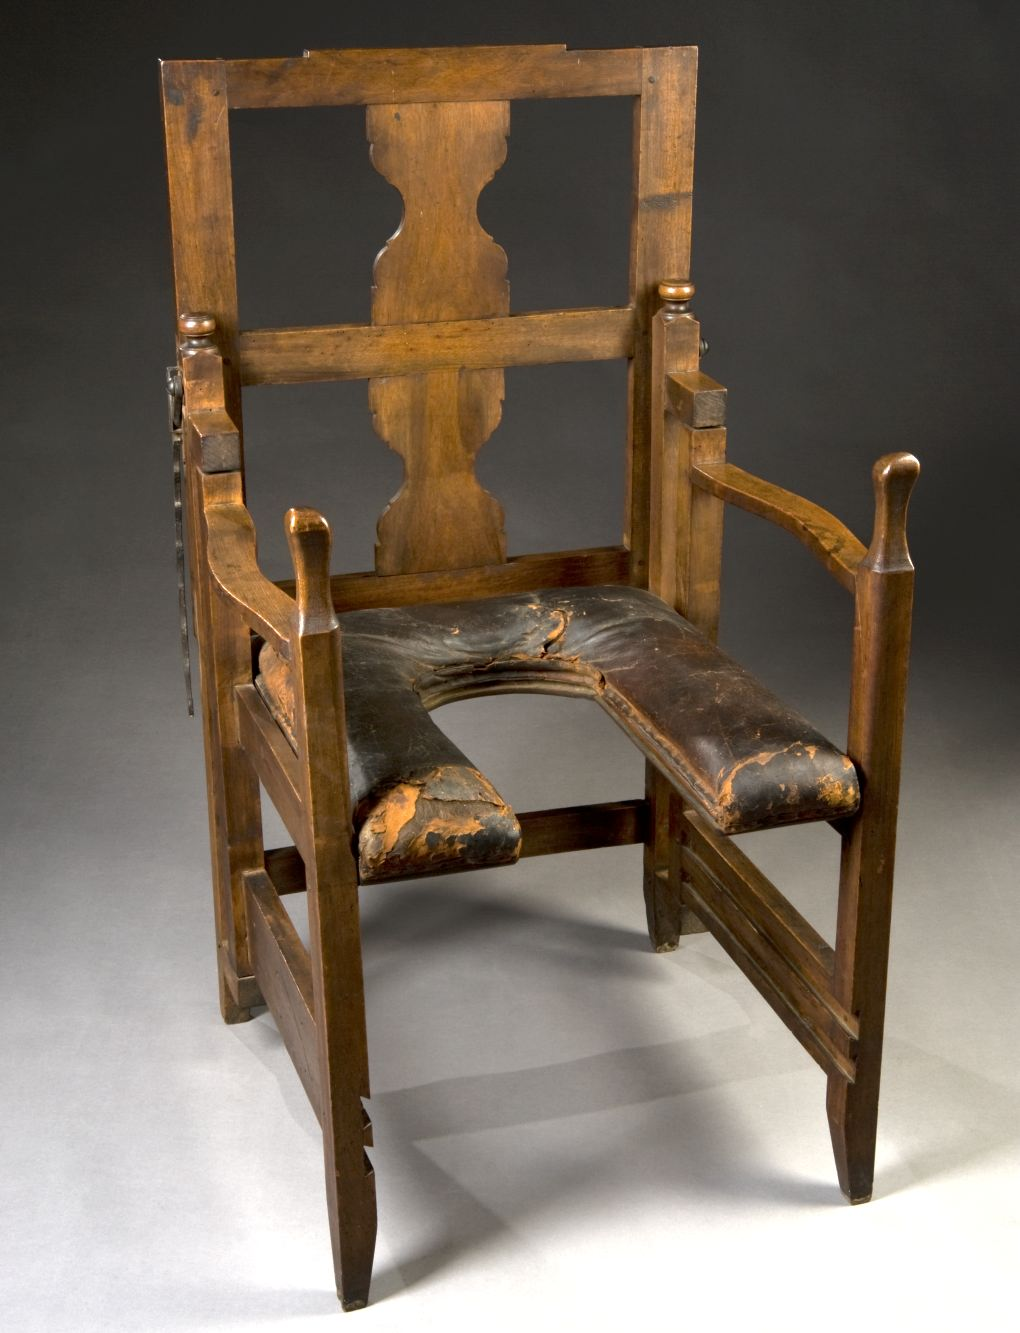 Birth Chair Tywkiwdbi Quot Wiki Widbee Quot Birthing Parturition Chair - Birth Chair - 28 Images - Birthing Chair Pictures To Pin On